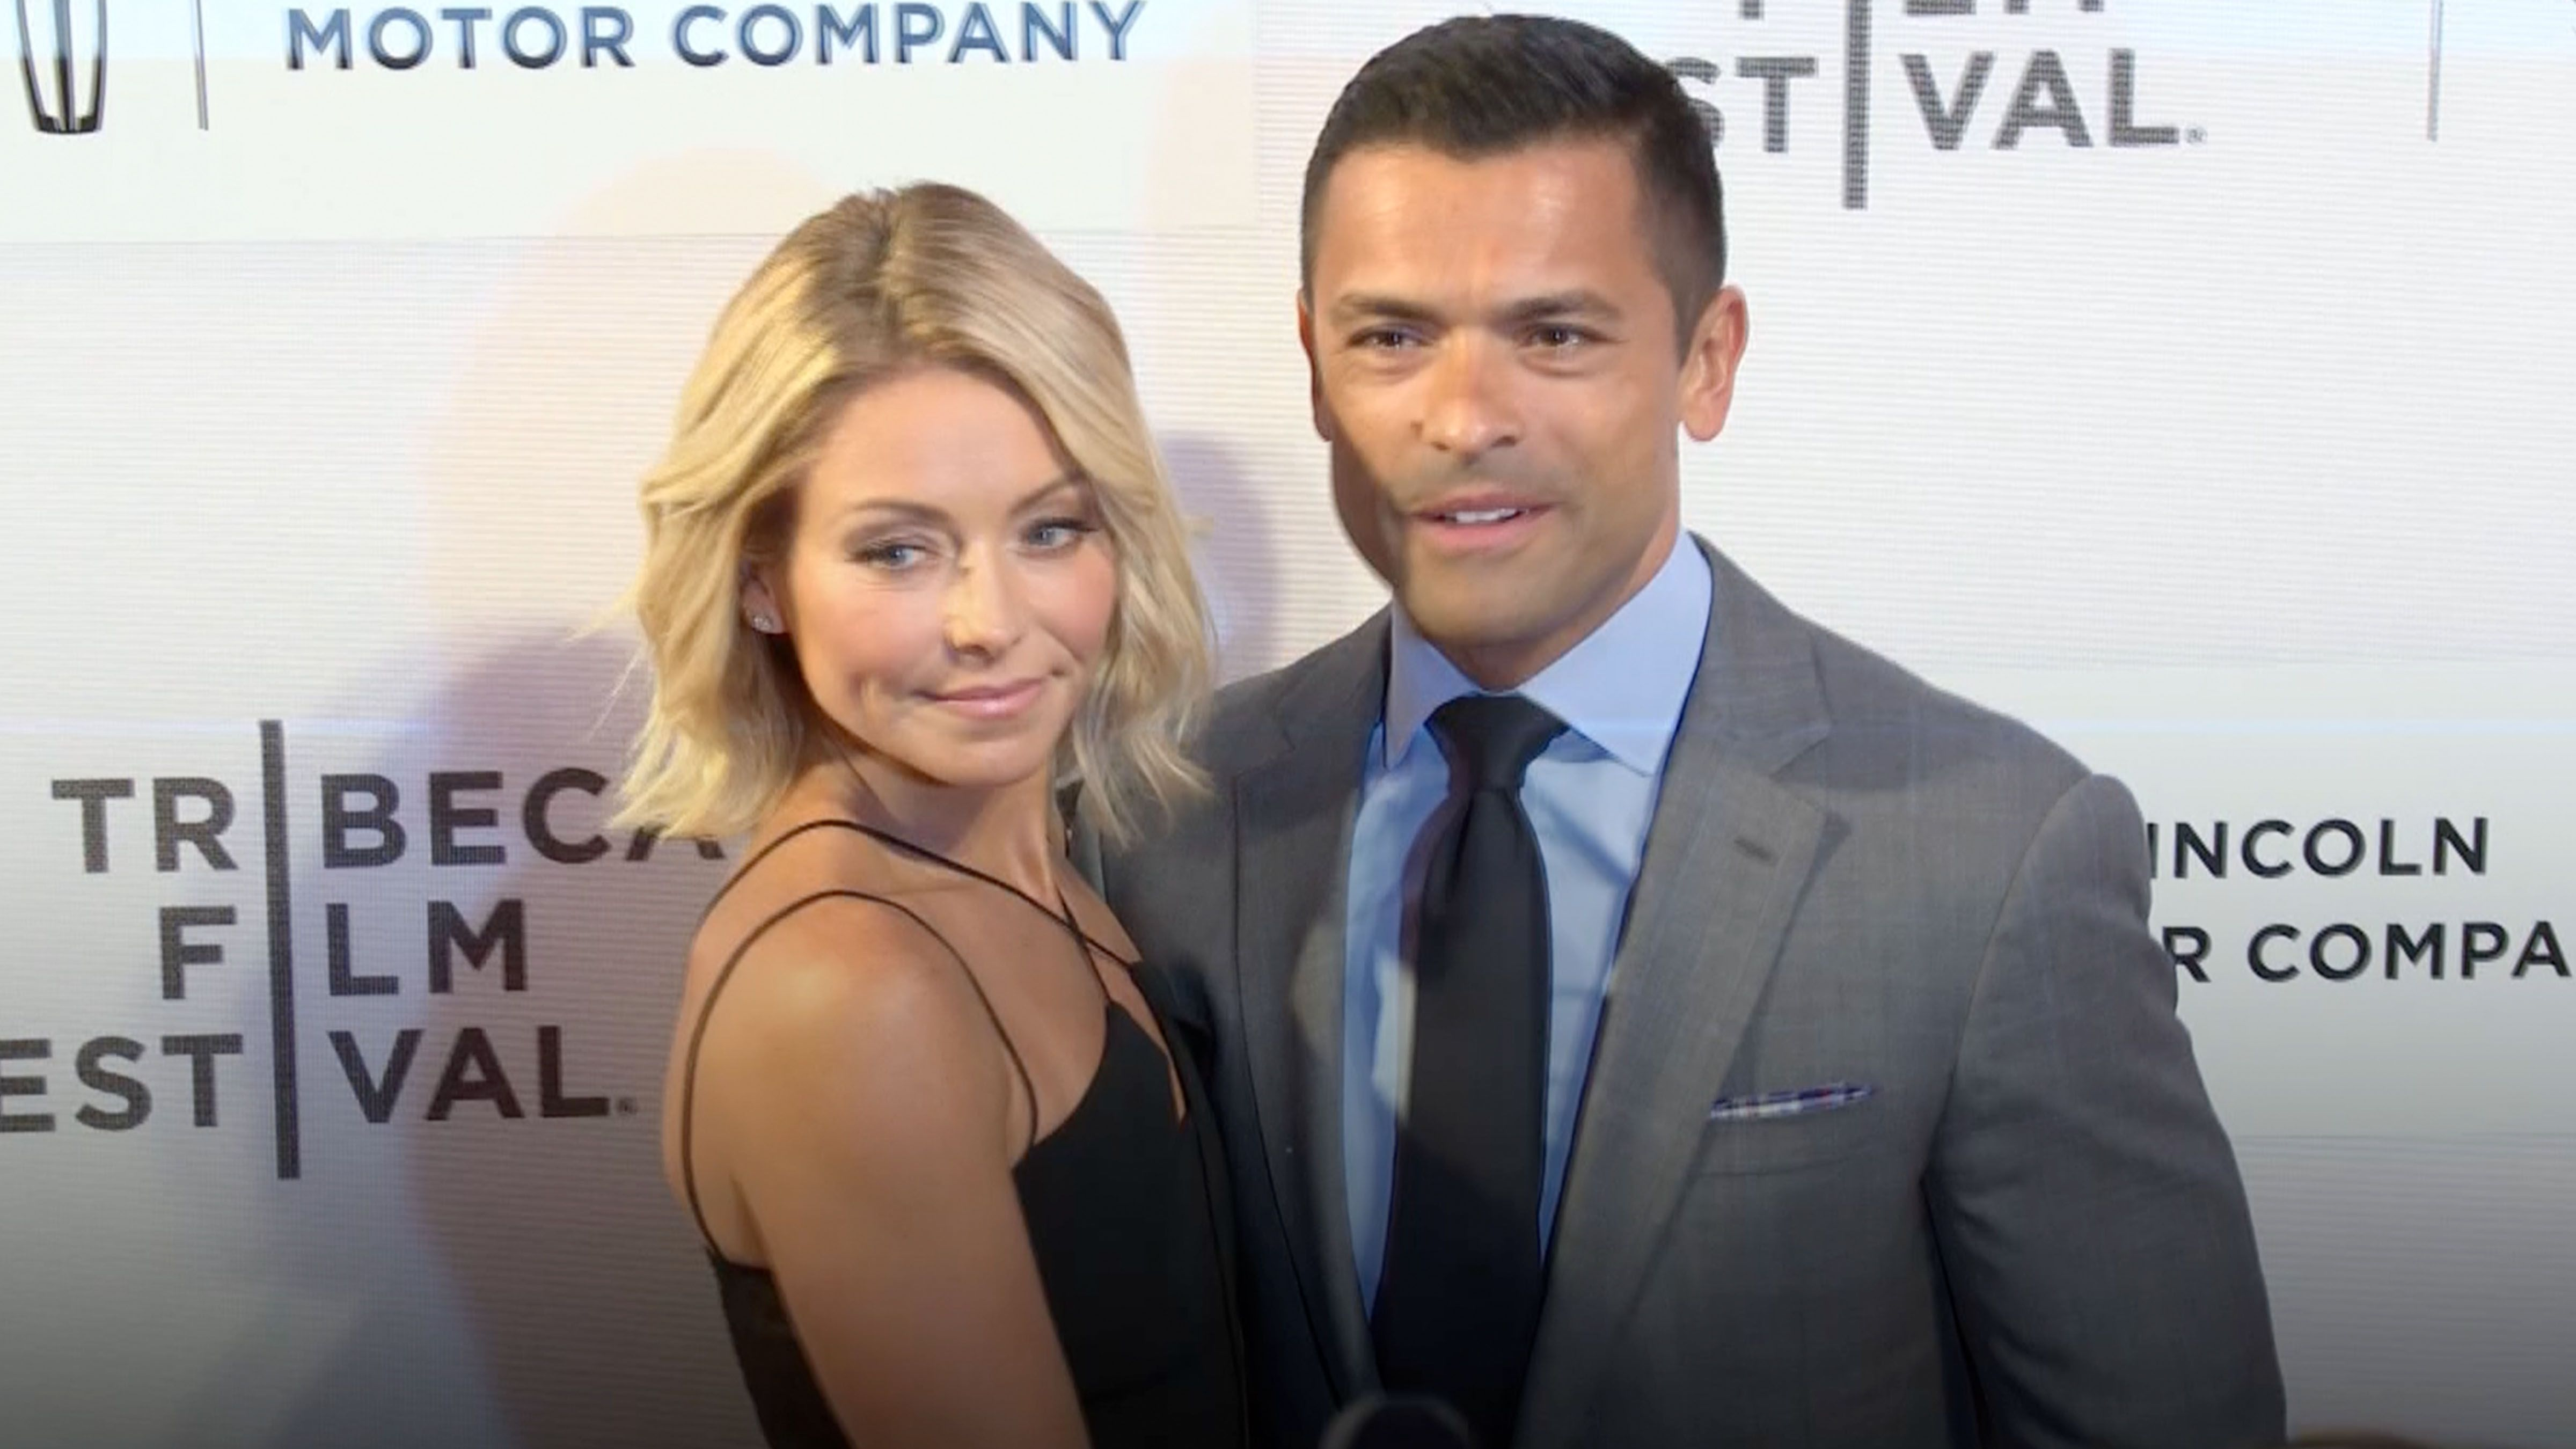 """Kelly Ripa and Mark Consuelos Get Backlash for """"Humiliating"""" Their Daughter Lola With Sex Story"""